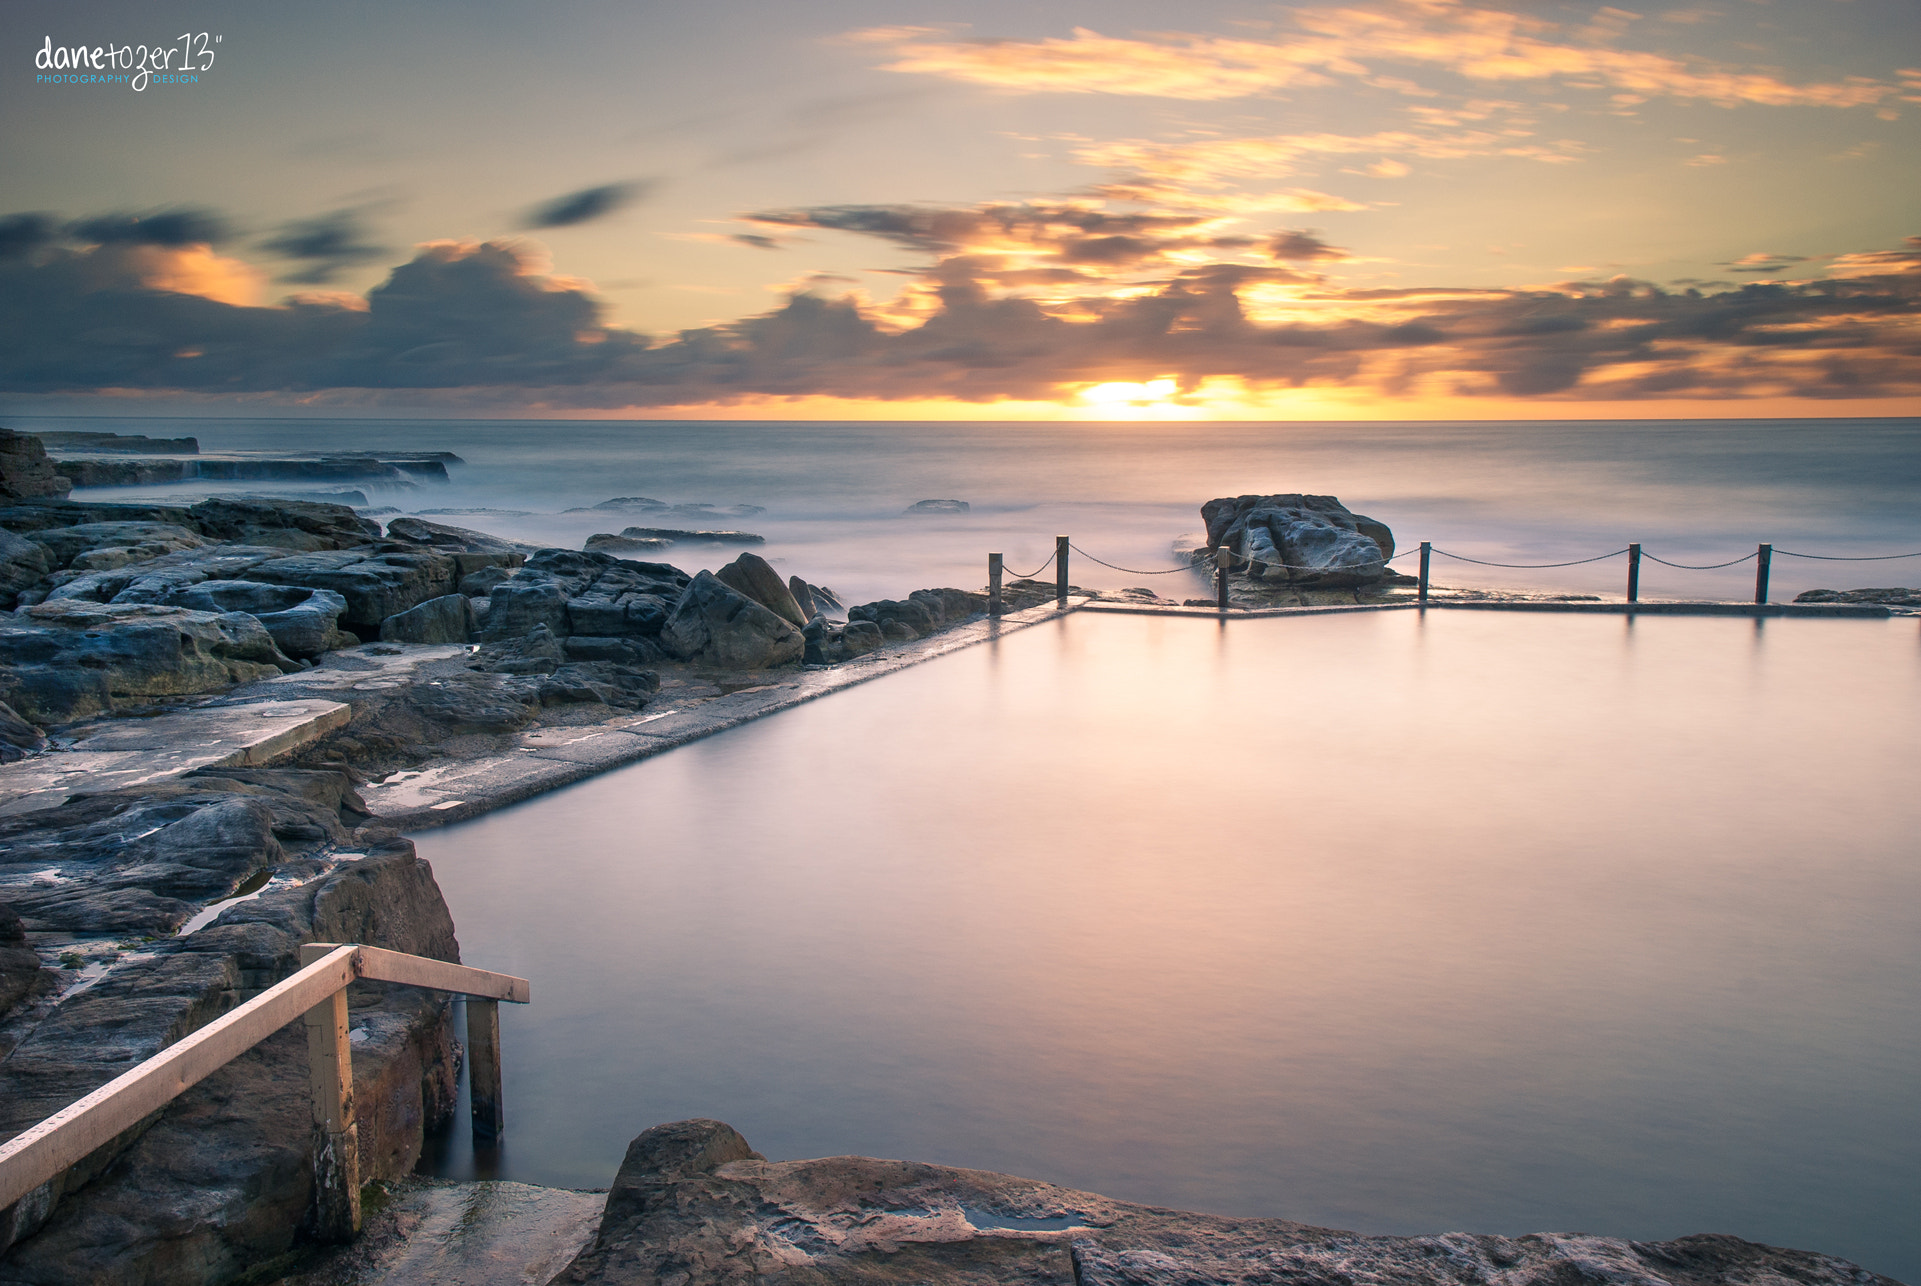 Photograph Mahon pool colours by Dane Tozer on 500px